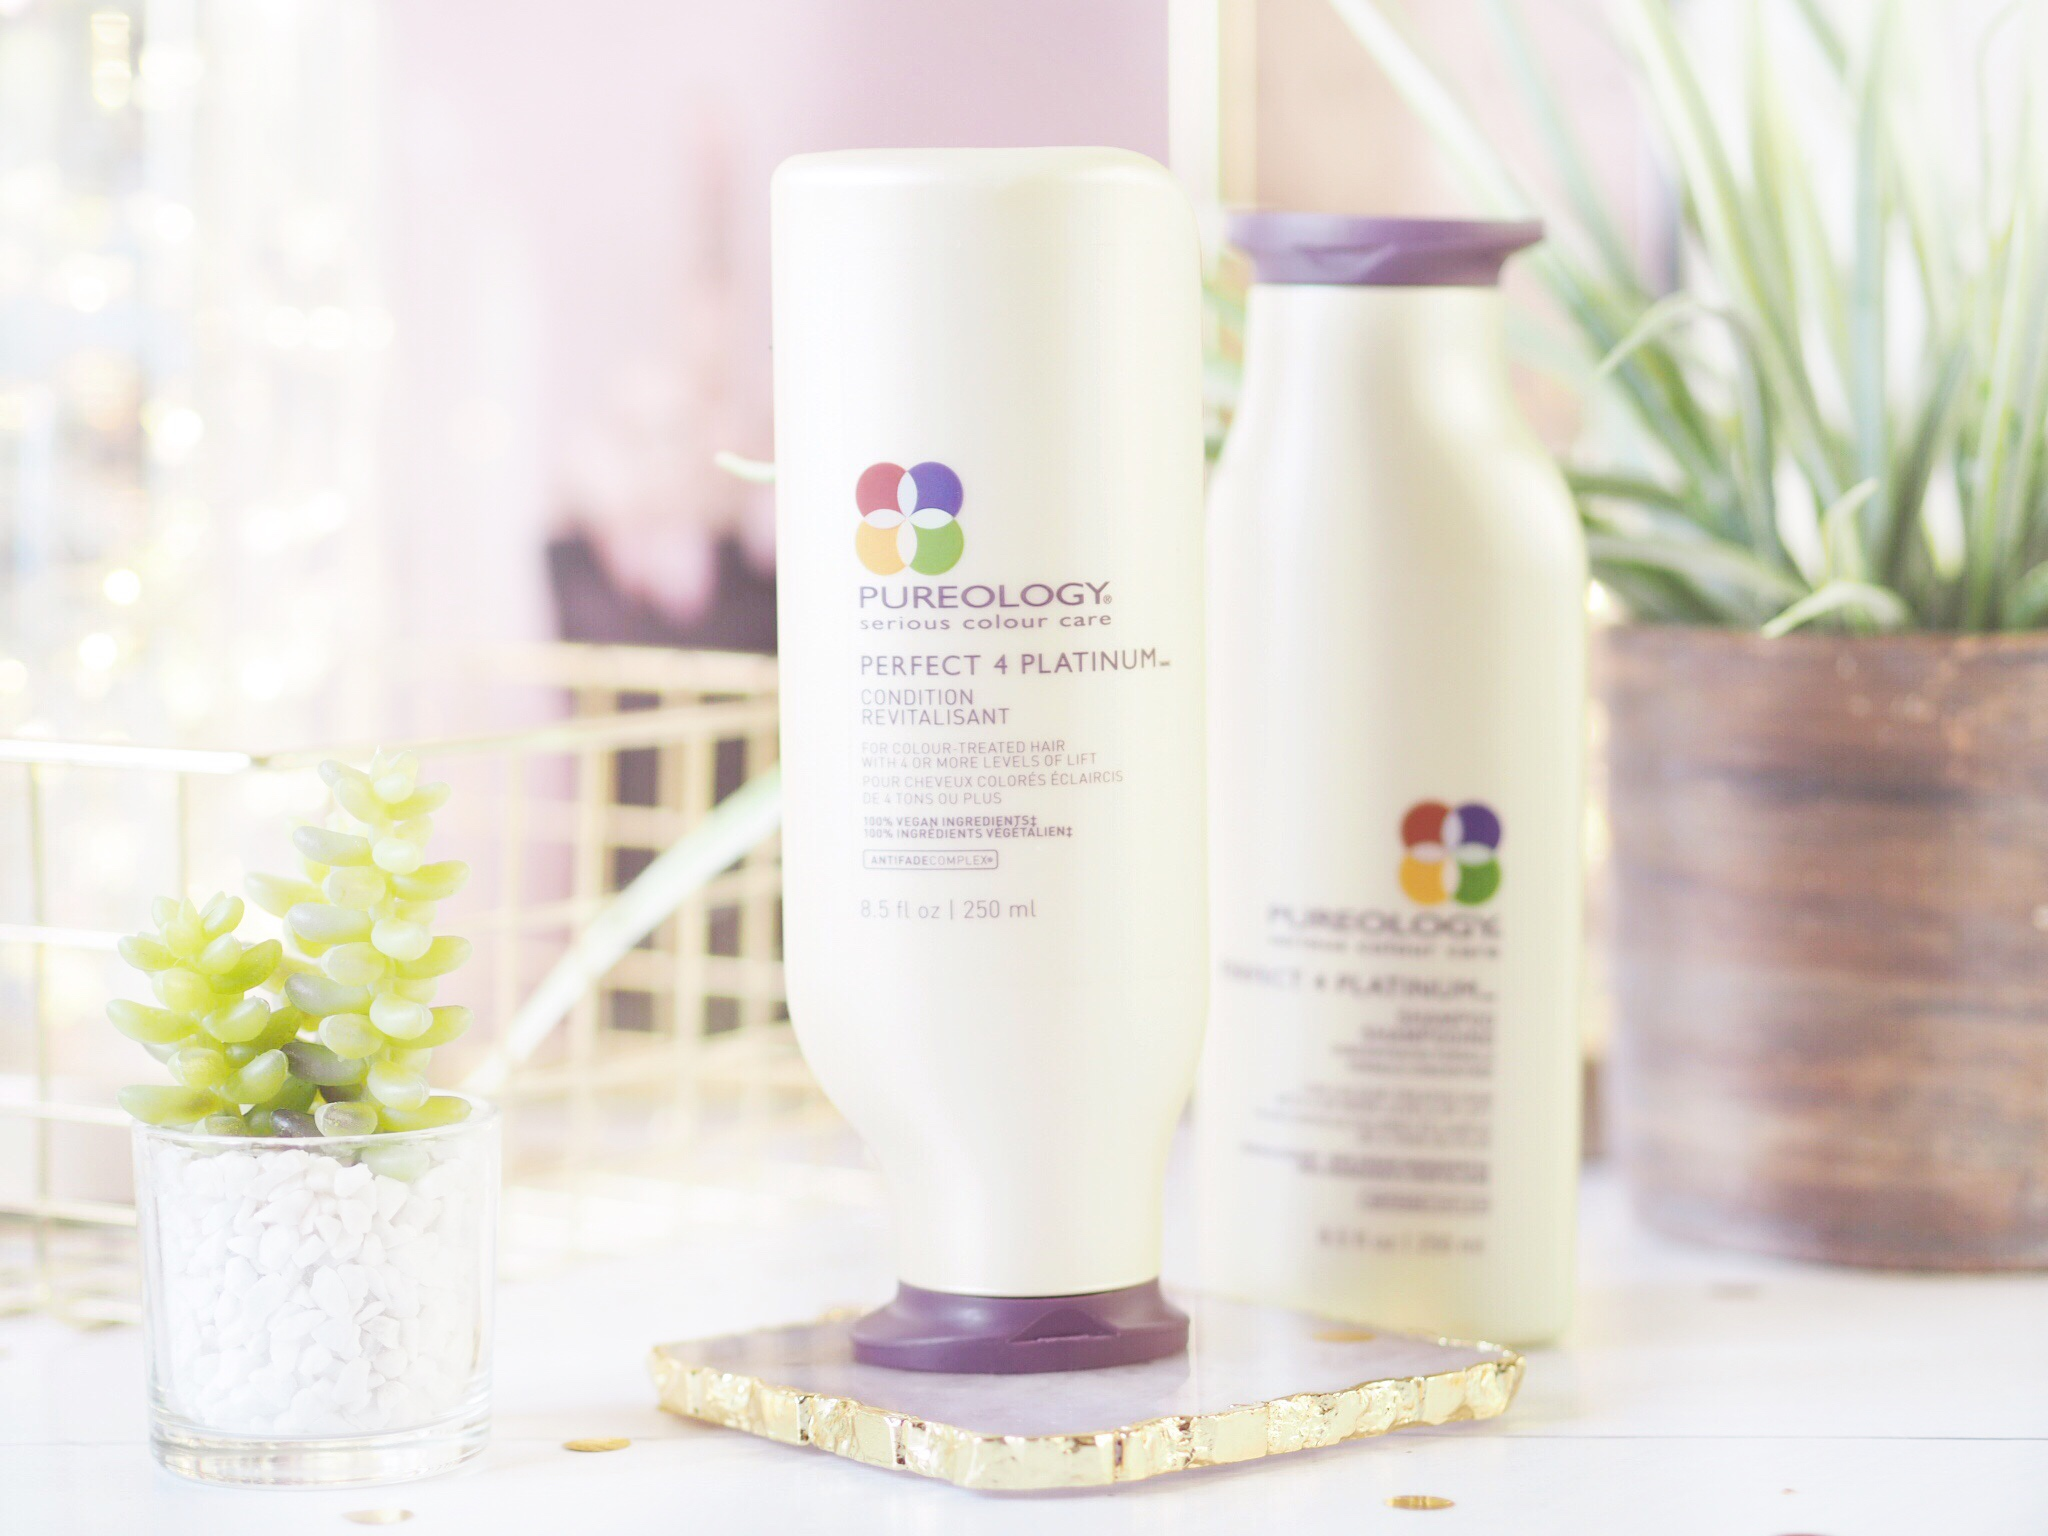 Pureology Perfect 4 Platinum Shampoo & Conditioner.